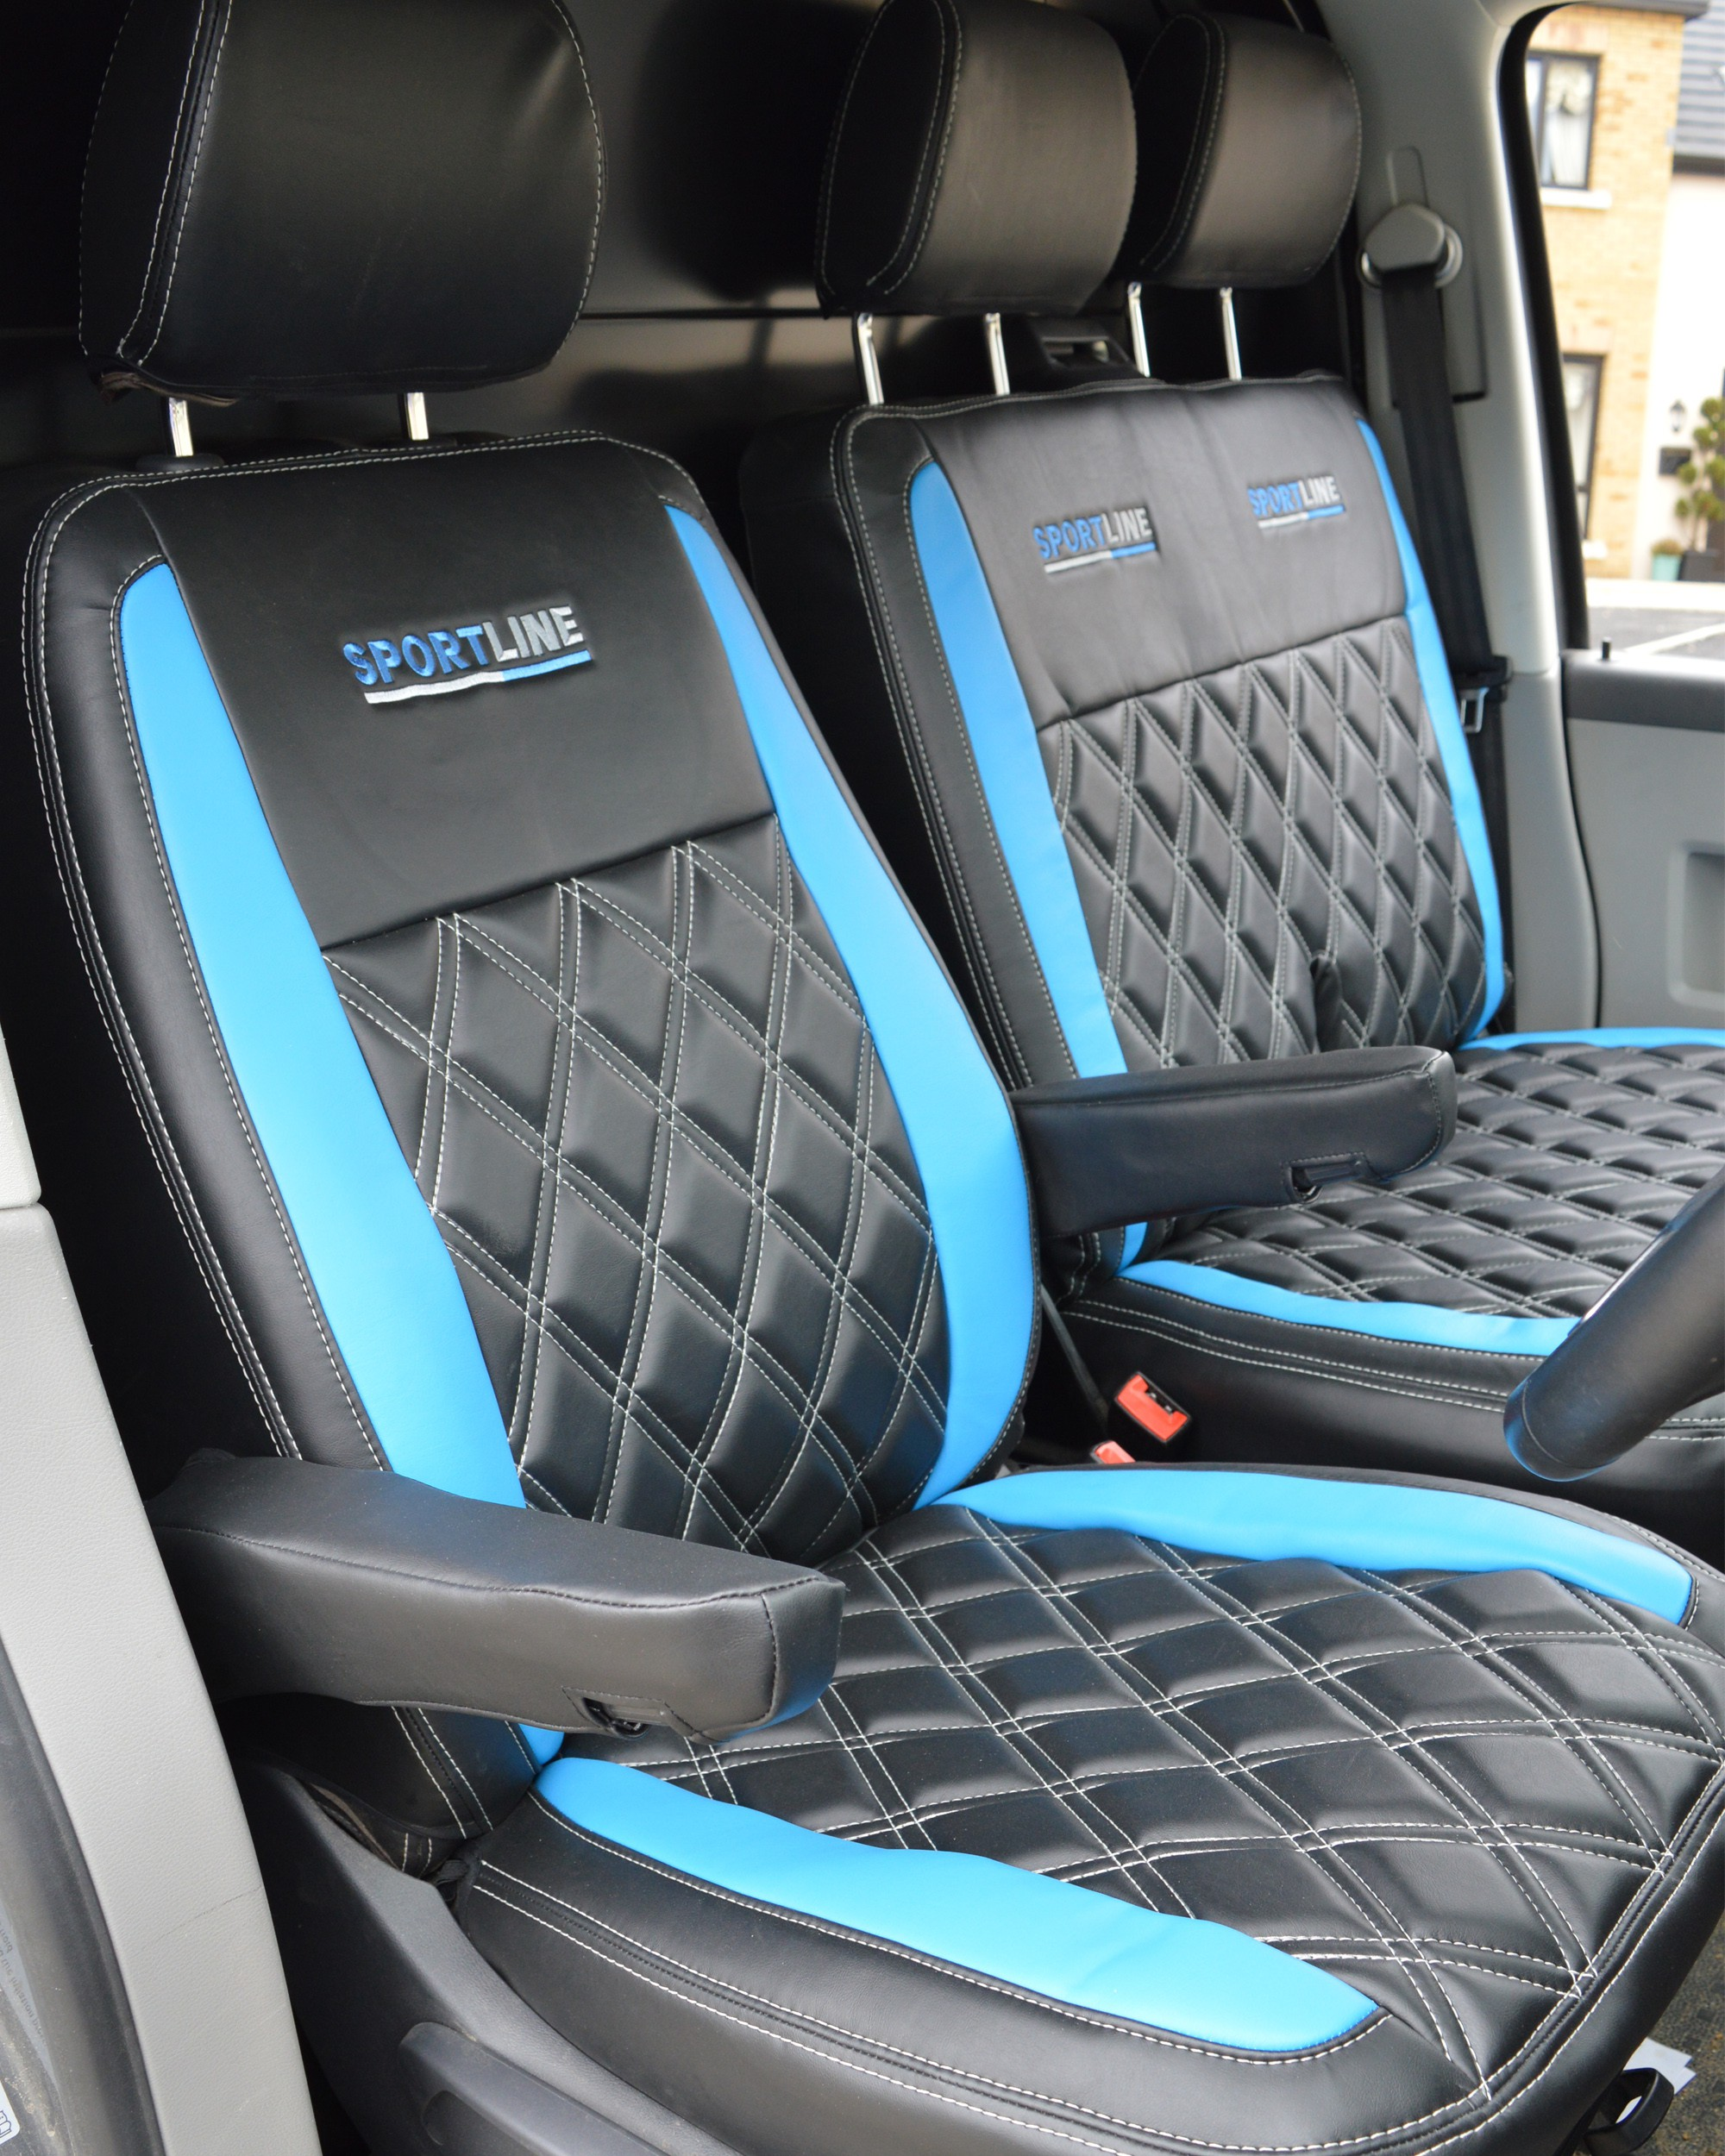 VW Transporter T5 Sportline Diamonds - Black with Blue Inserts